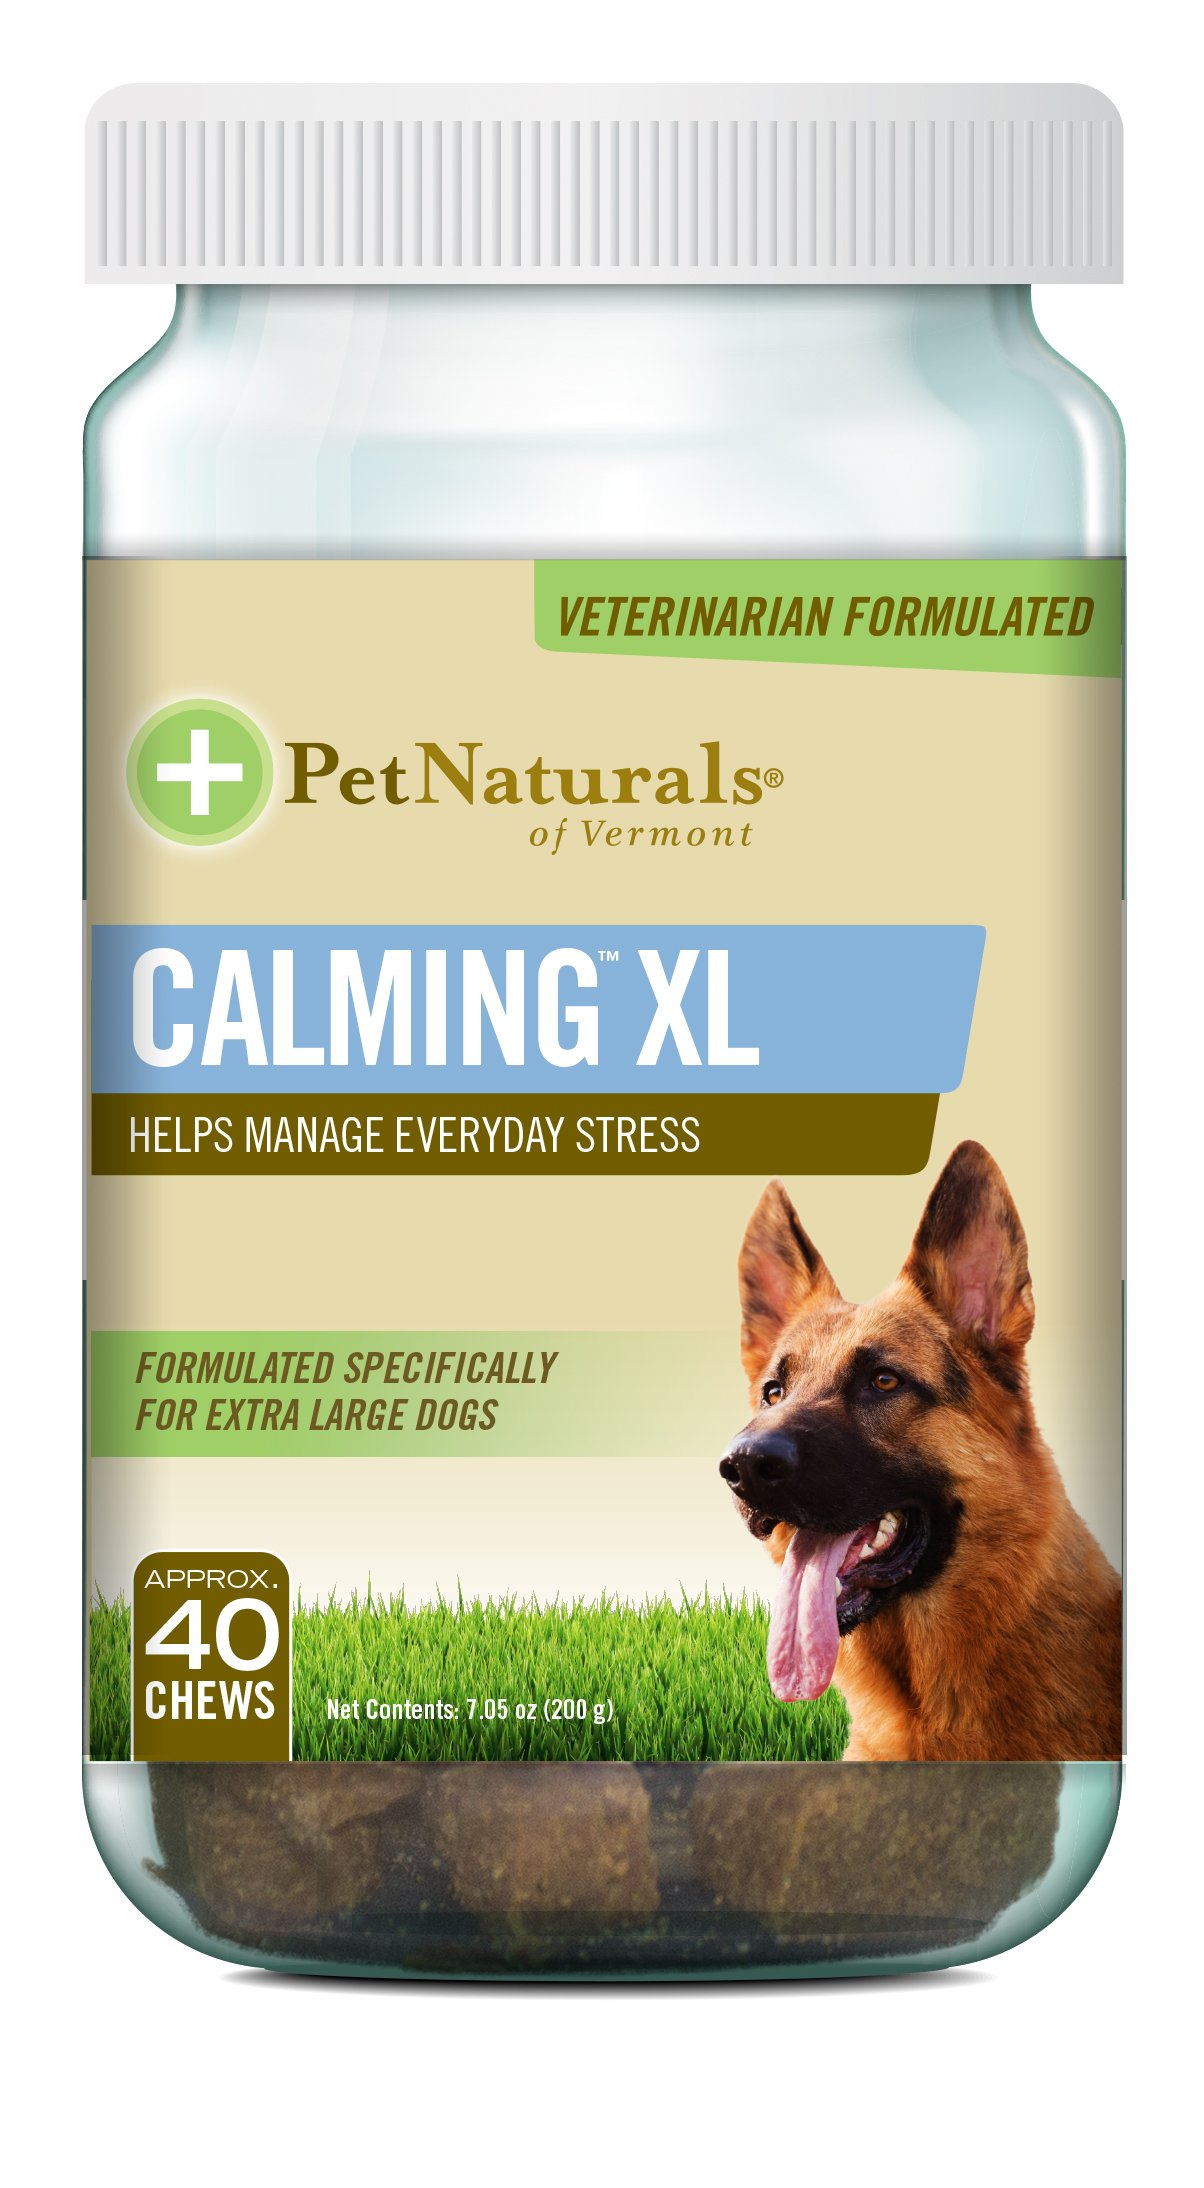 Pet Naturals of Vermont - Calming XL, Behavior Support Supplement for Dogs 75 LBS and Up, 40 Bite-Sized Chews by Pet Naturals